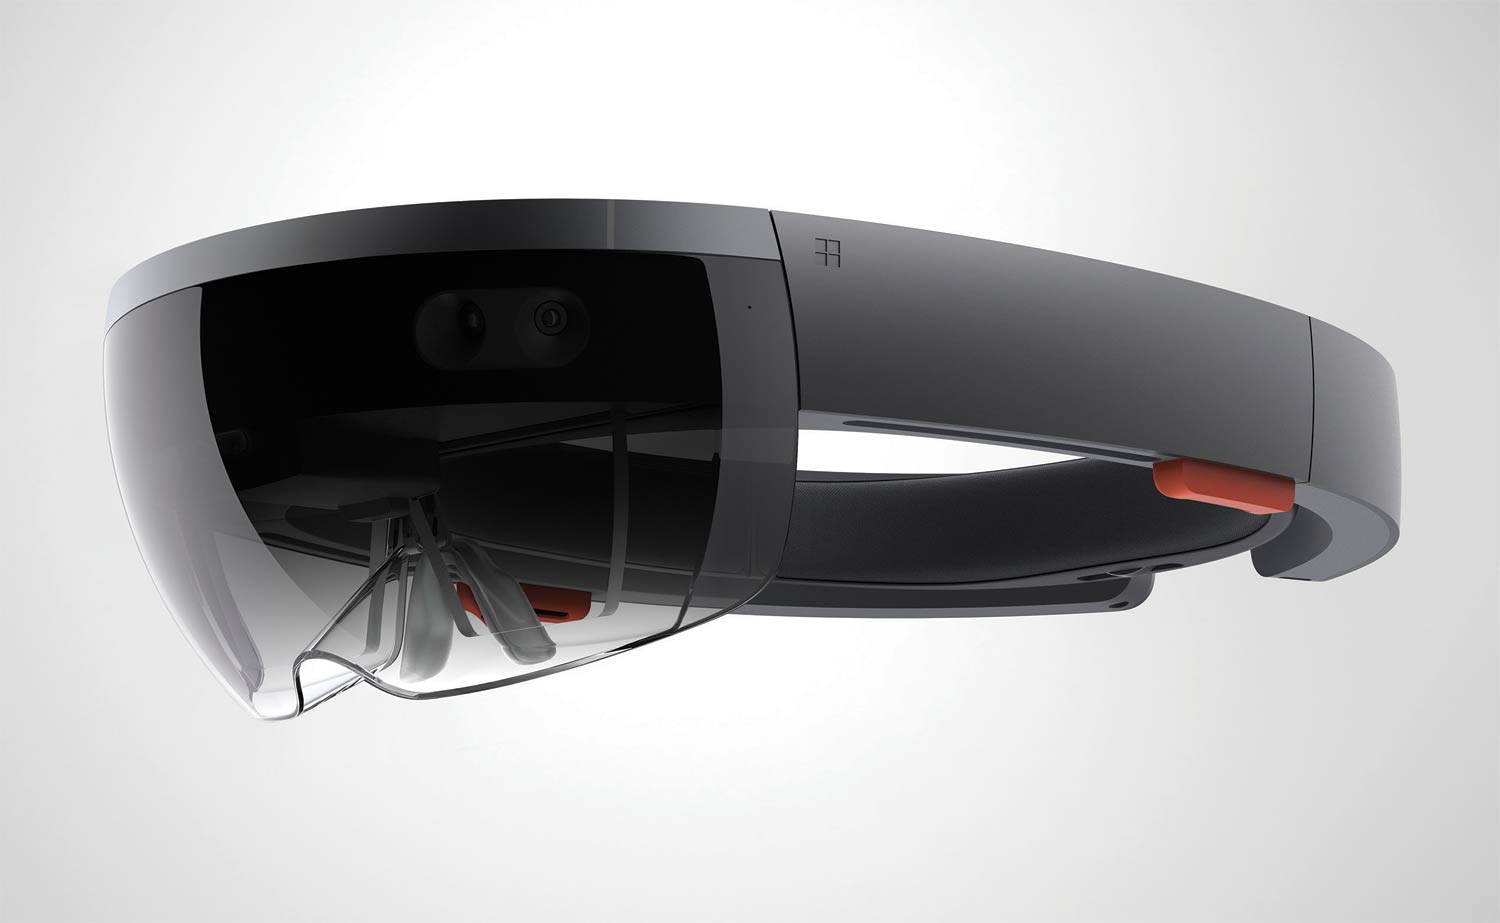 The Microsoft Hololens, the product to make every designer and gamers dreams come true